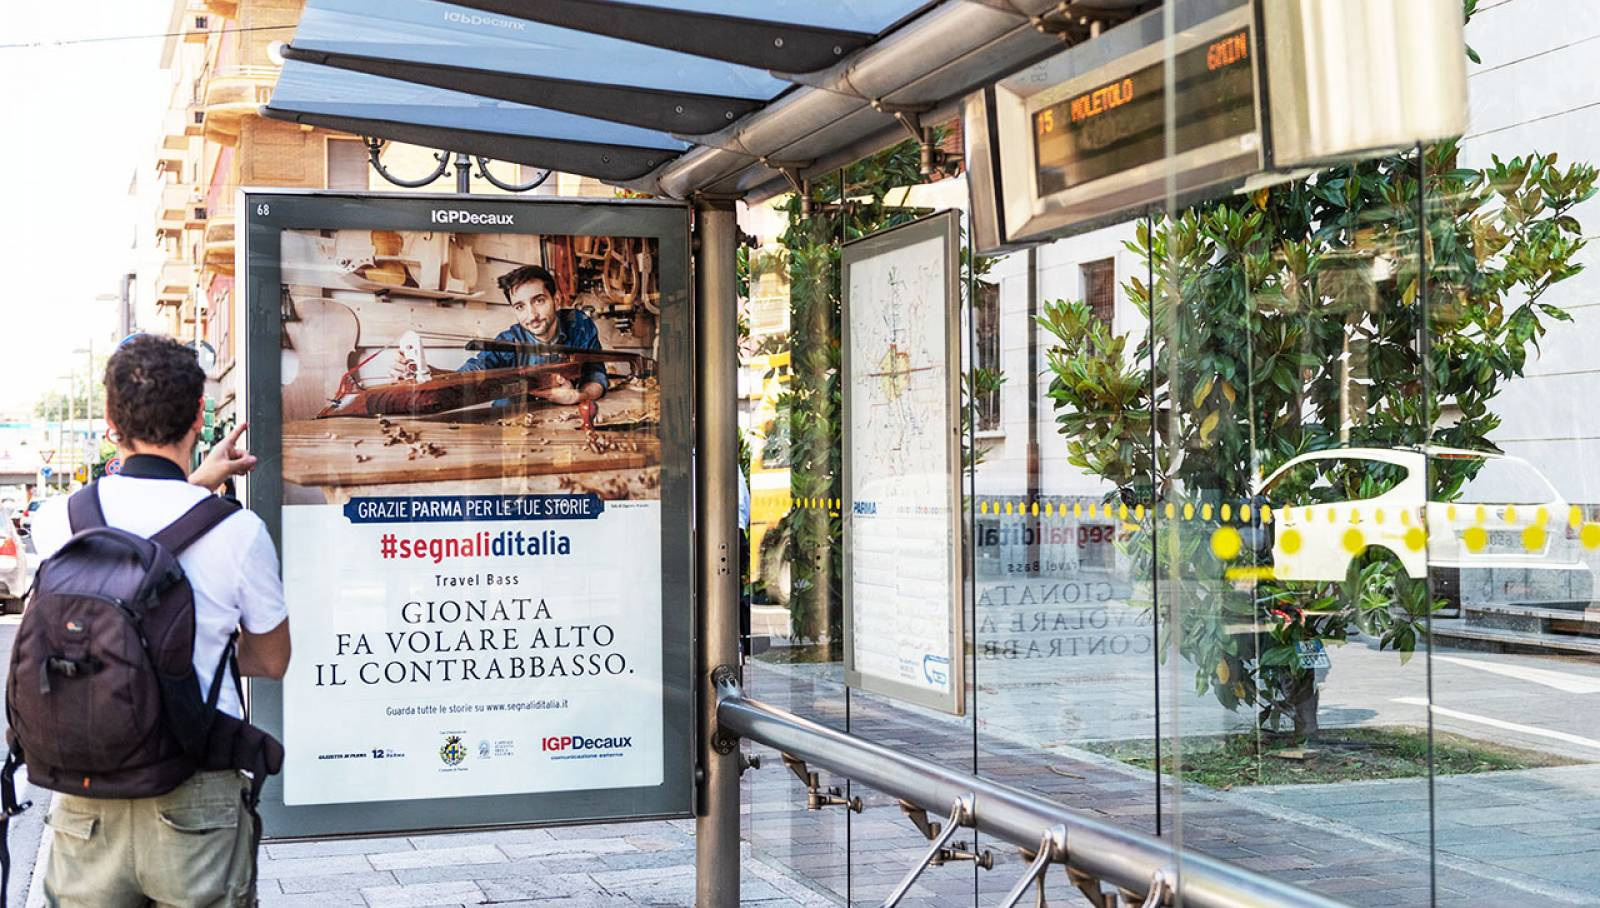 IGPDecaux Out of Home advertising Bus Shelters in Parma for segnali d'Italia thanks campaign